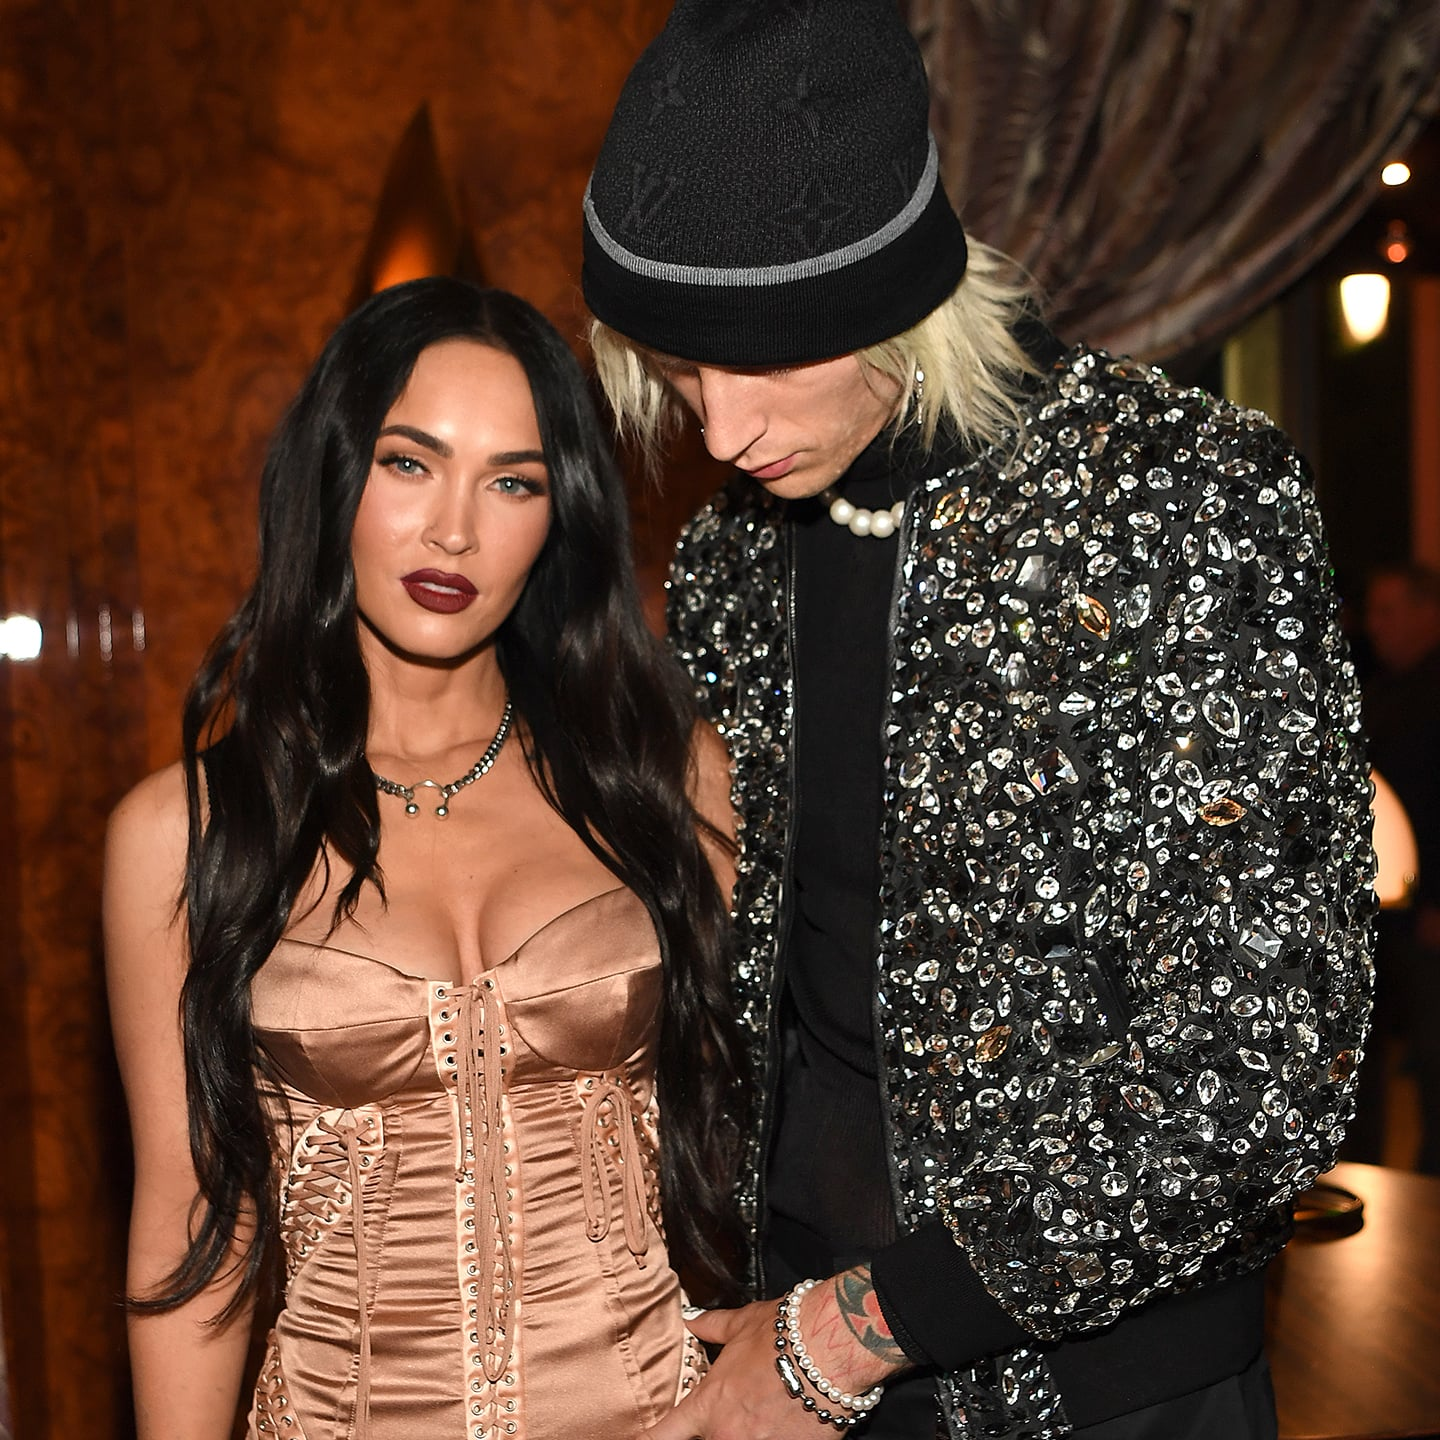 Megan Fox and Machine Gun Kelly in one of the event together